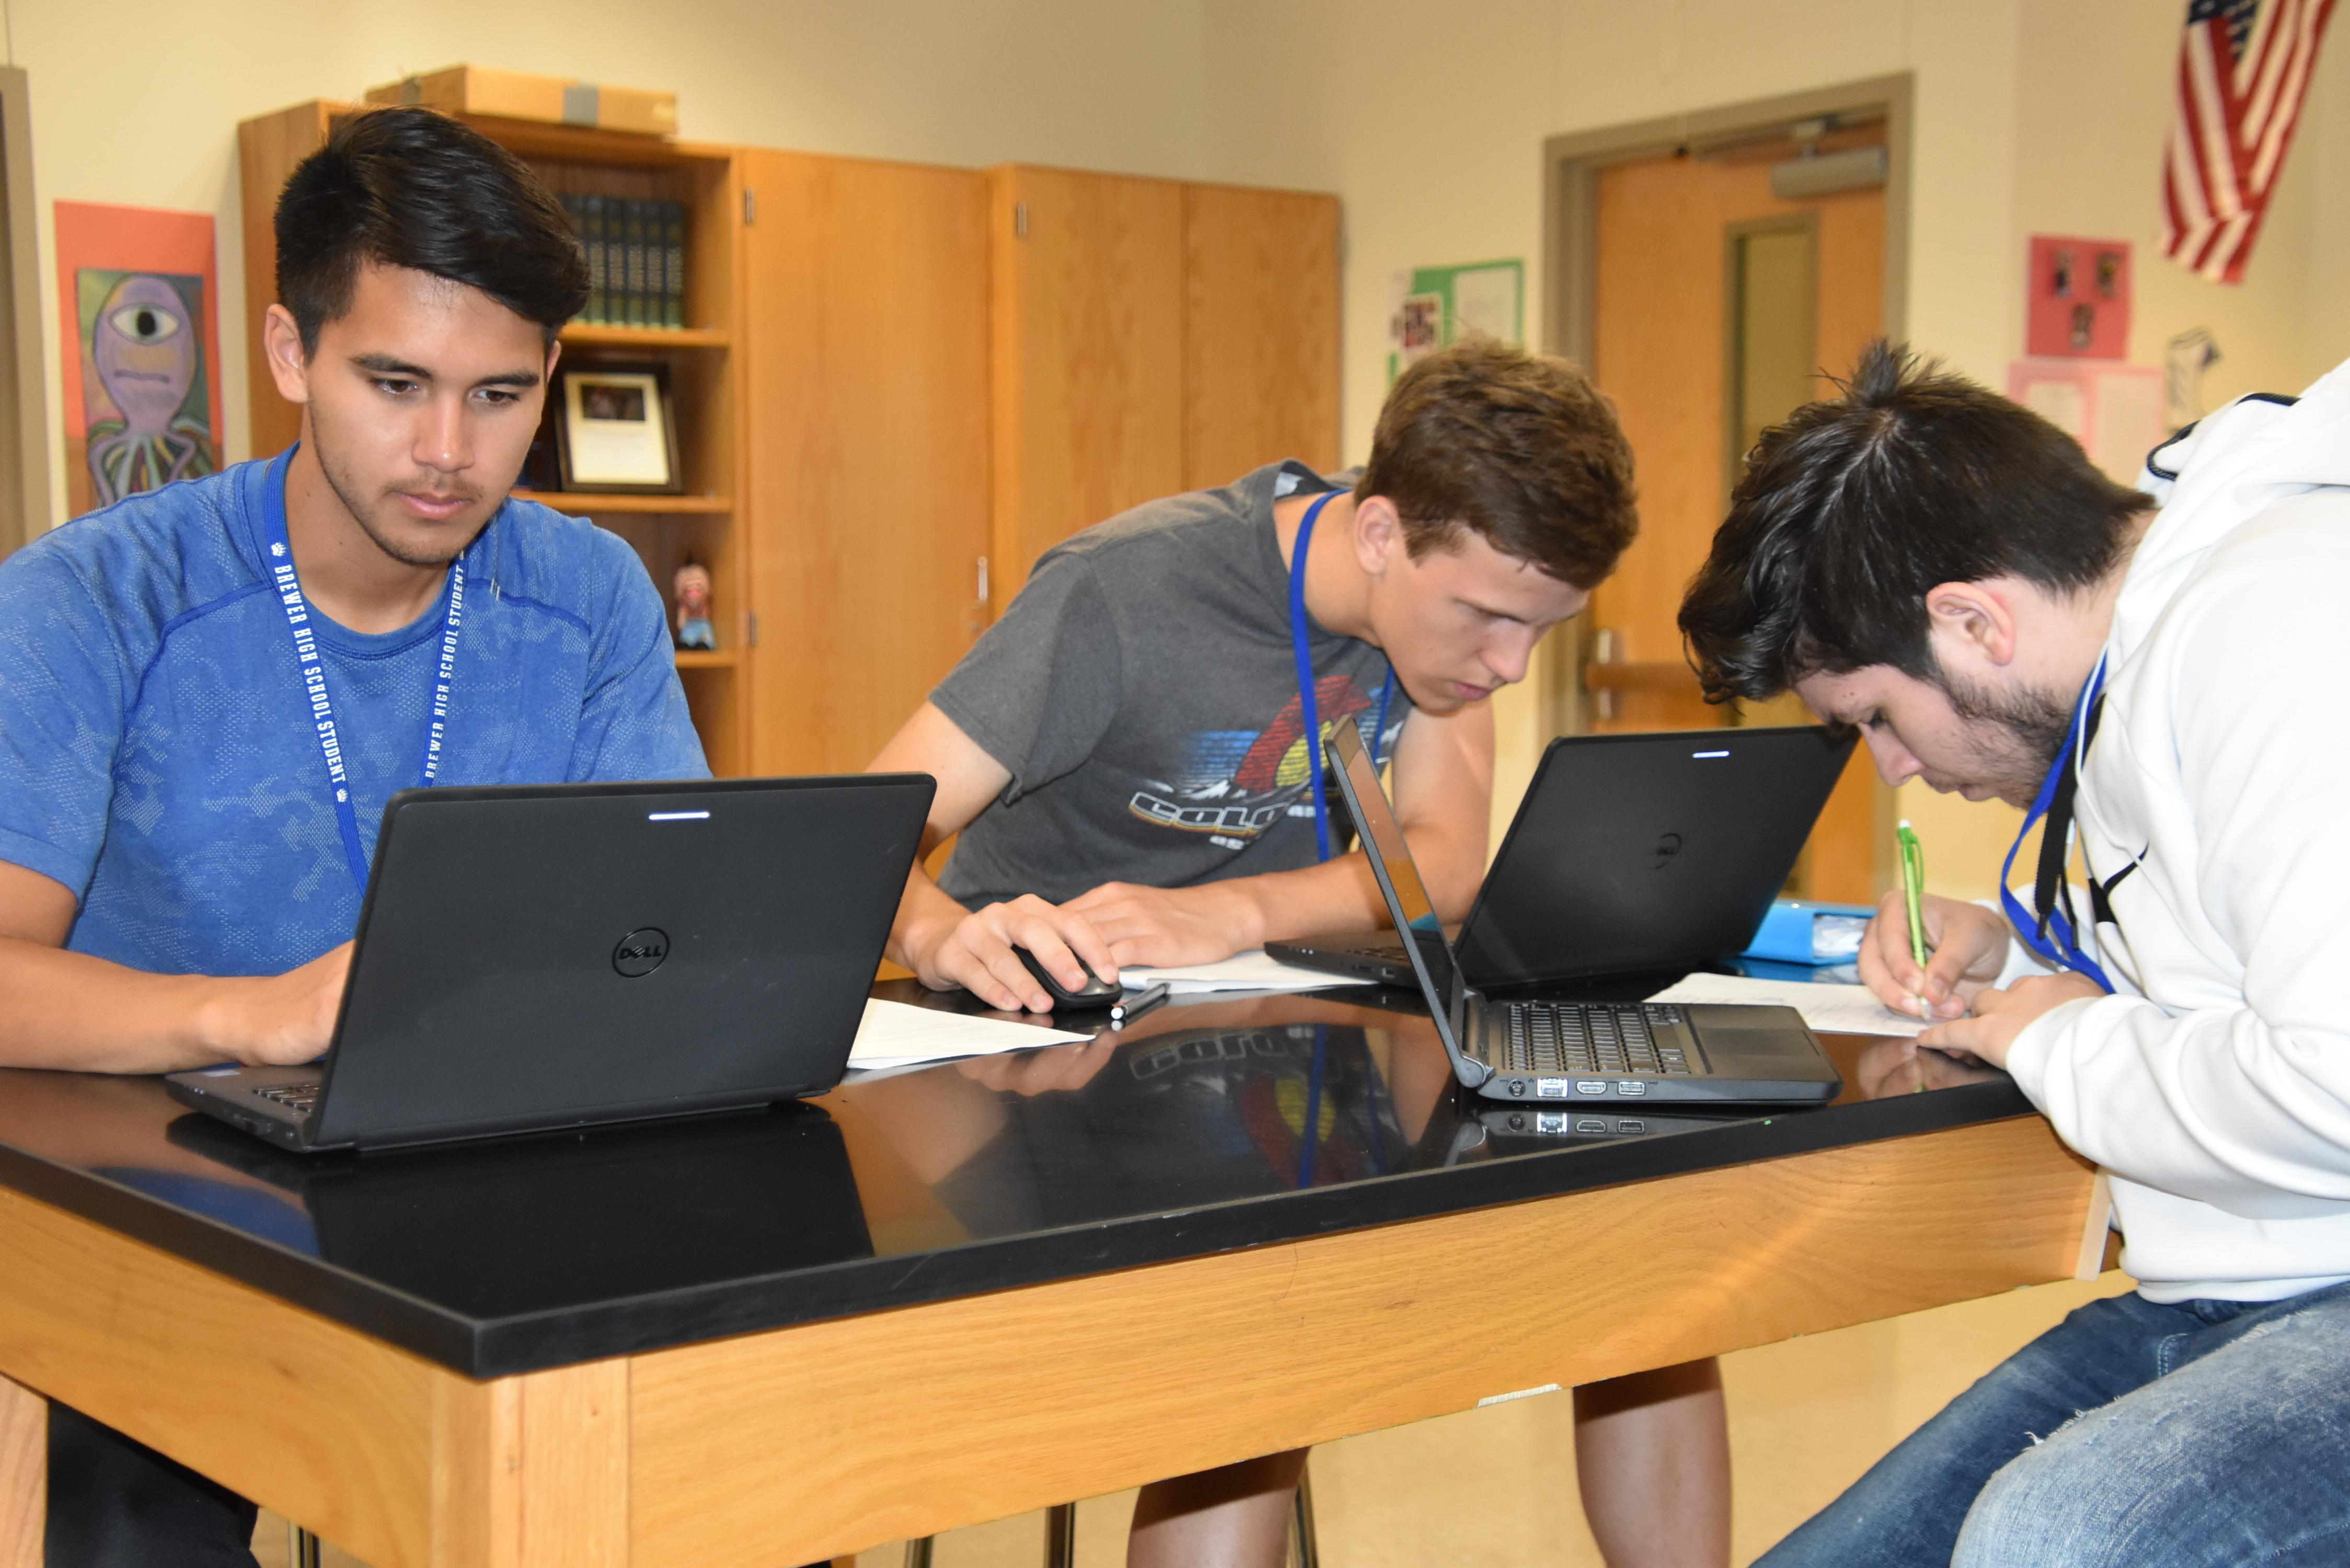 Brewer High School students in Randall Bradshaw's dual credit physics class use their Dell laptops to work on a computer-generated simulation and explore the relationships between electric fields, electric potential and distance from a source charge.